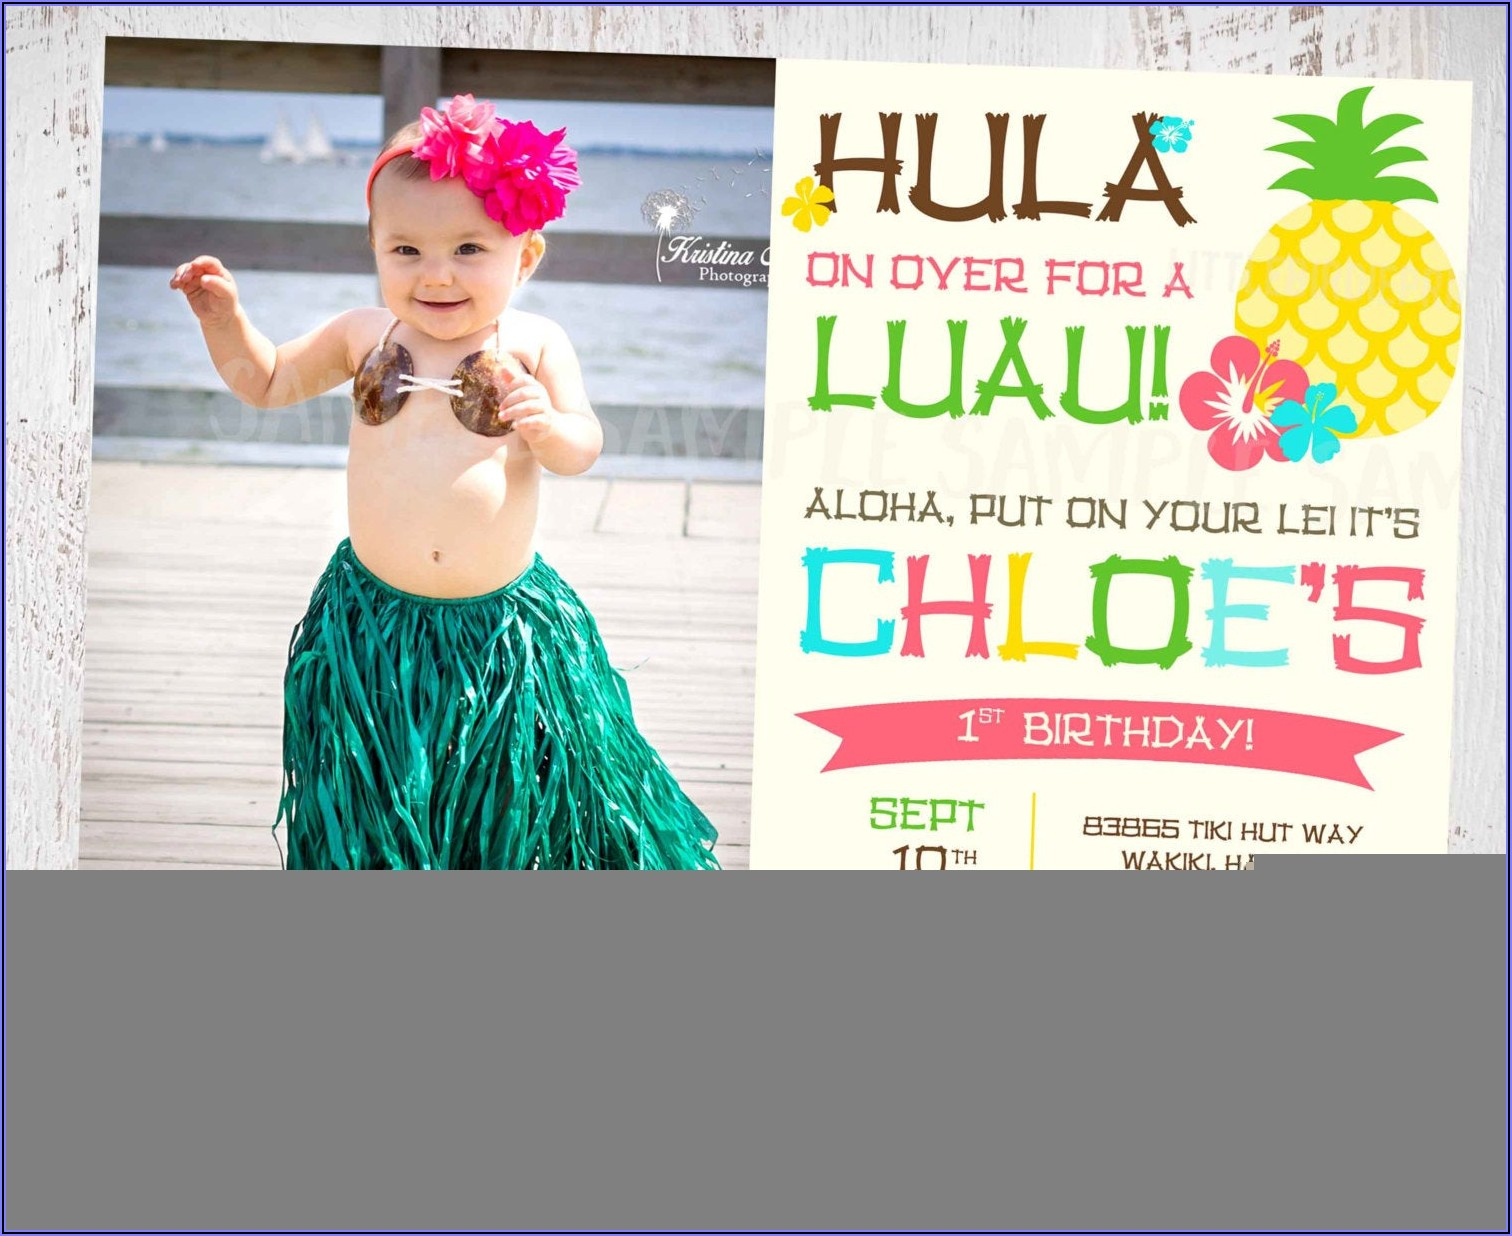 1st Birthday Luau Party Invitations